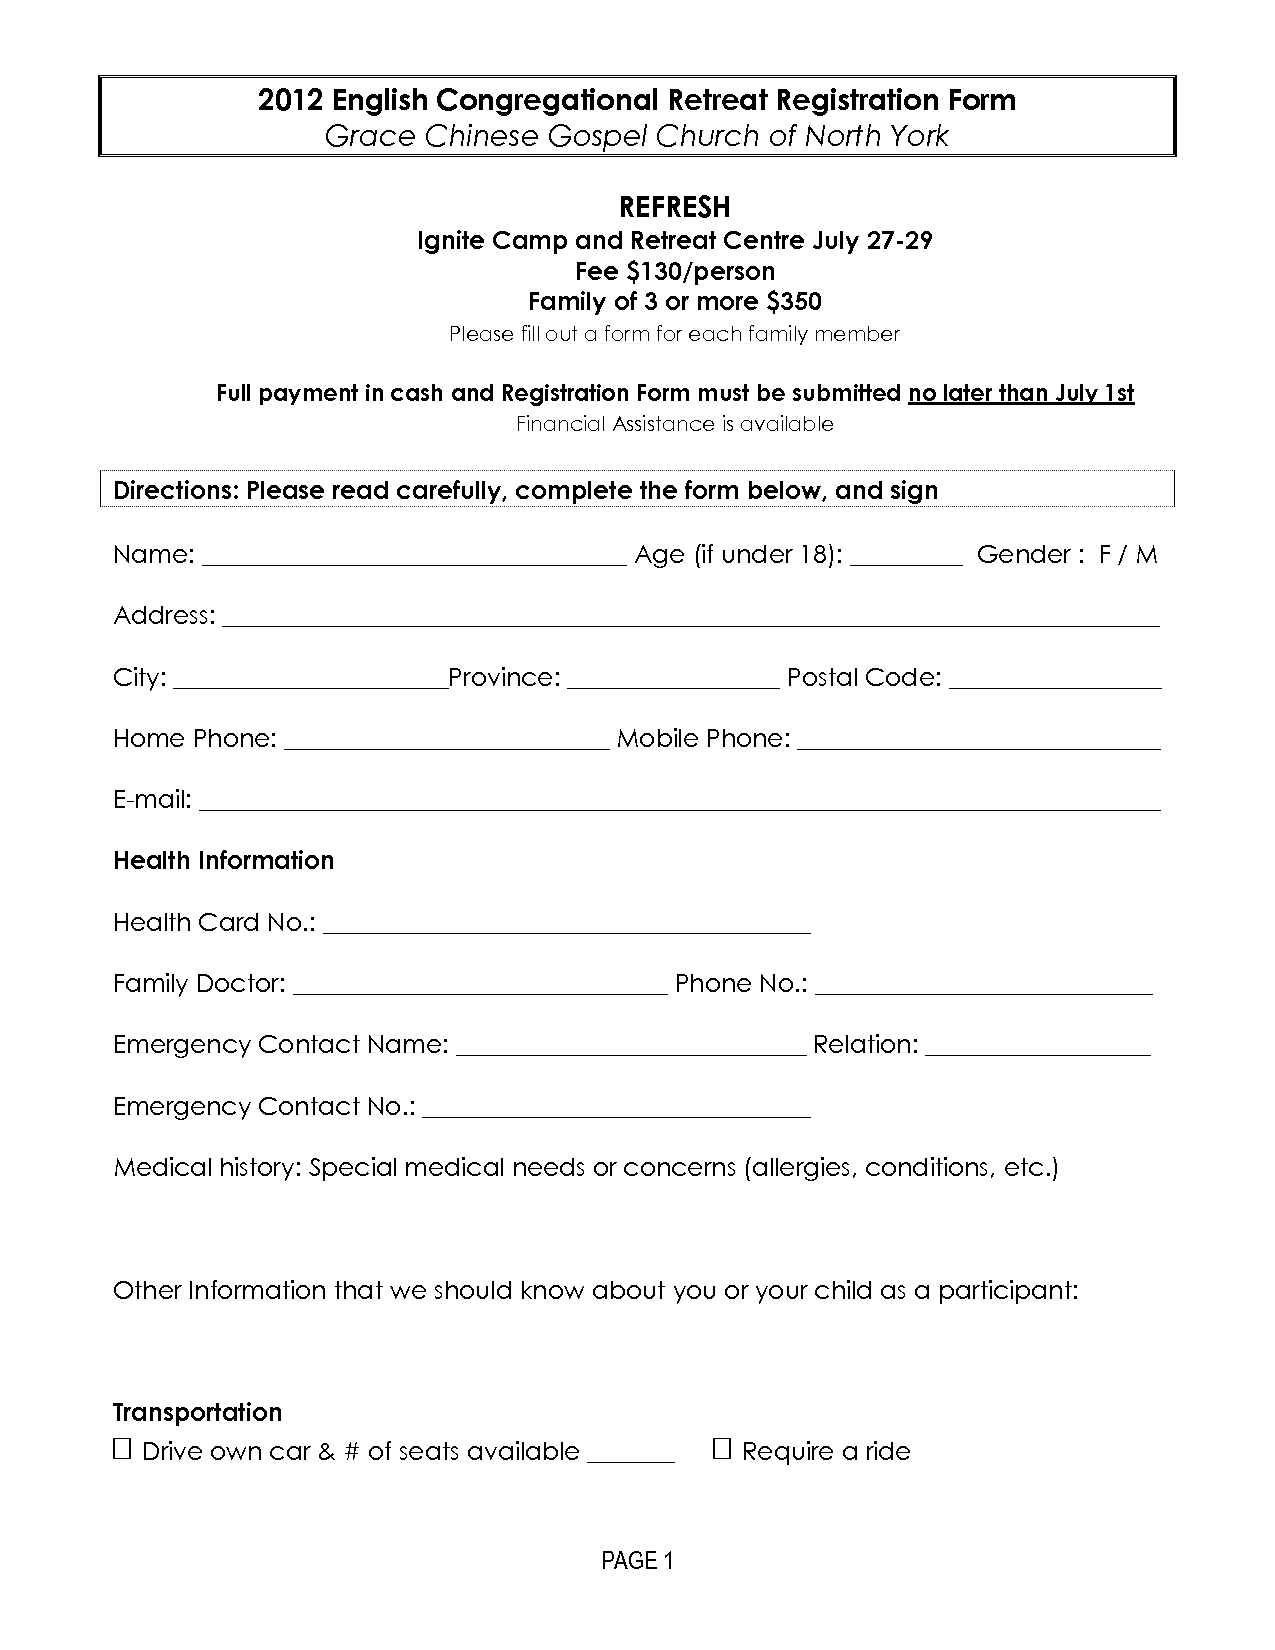 Retreatregistrationforms retreat registration form template retreatregistrationforms retreat registration form template word pronofoot35fo Image collections